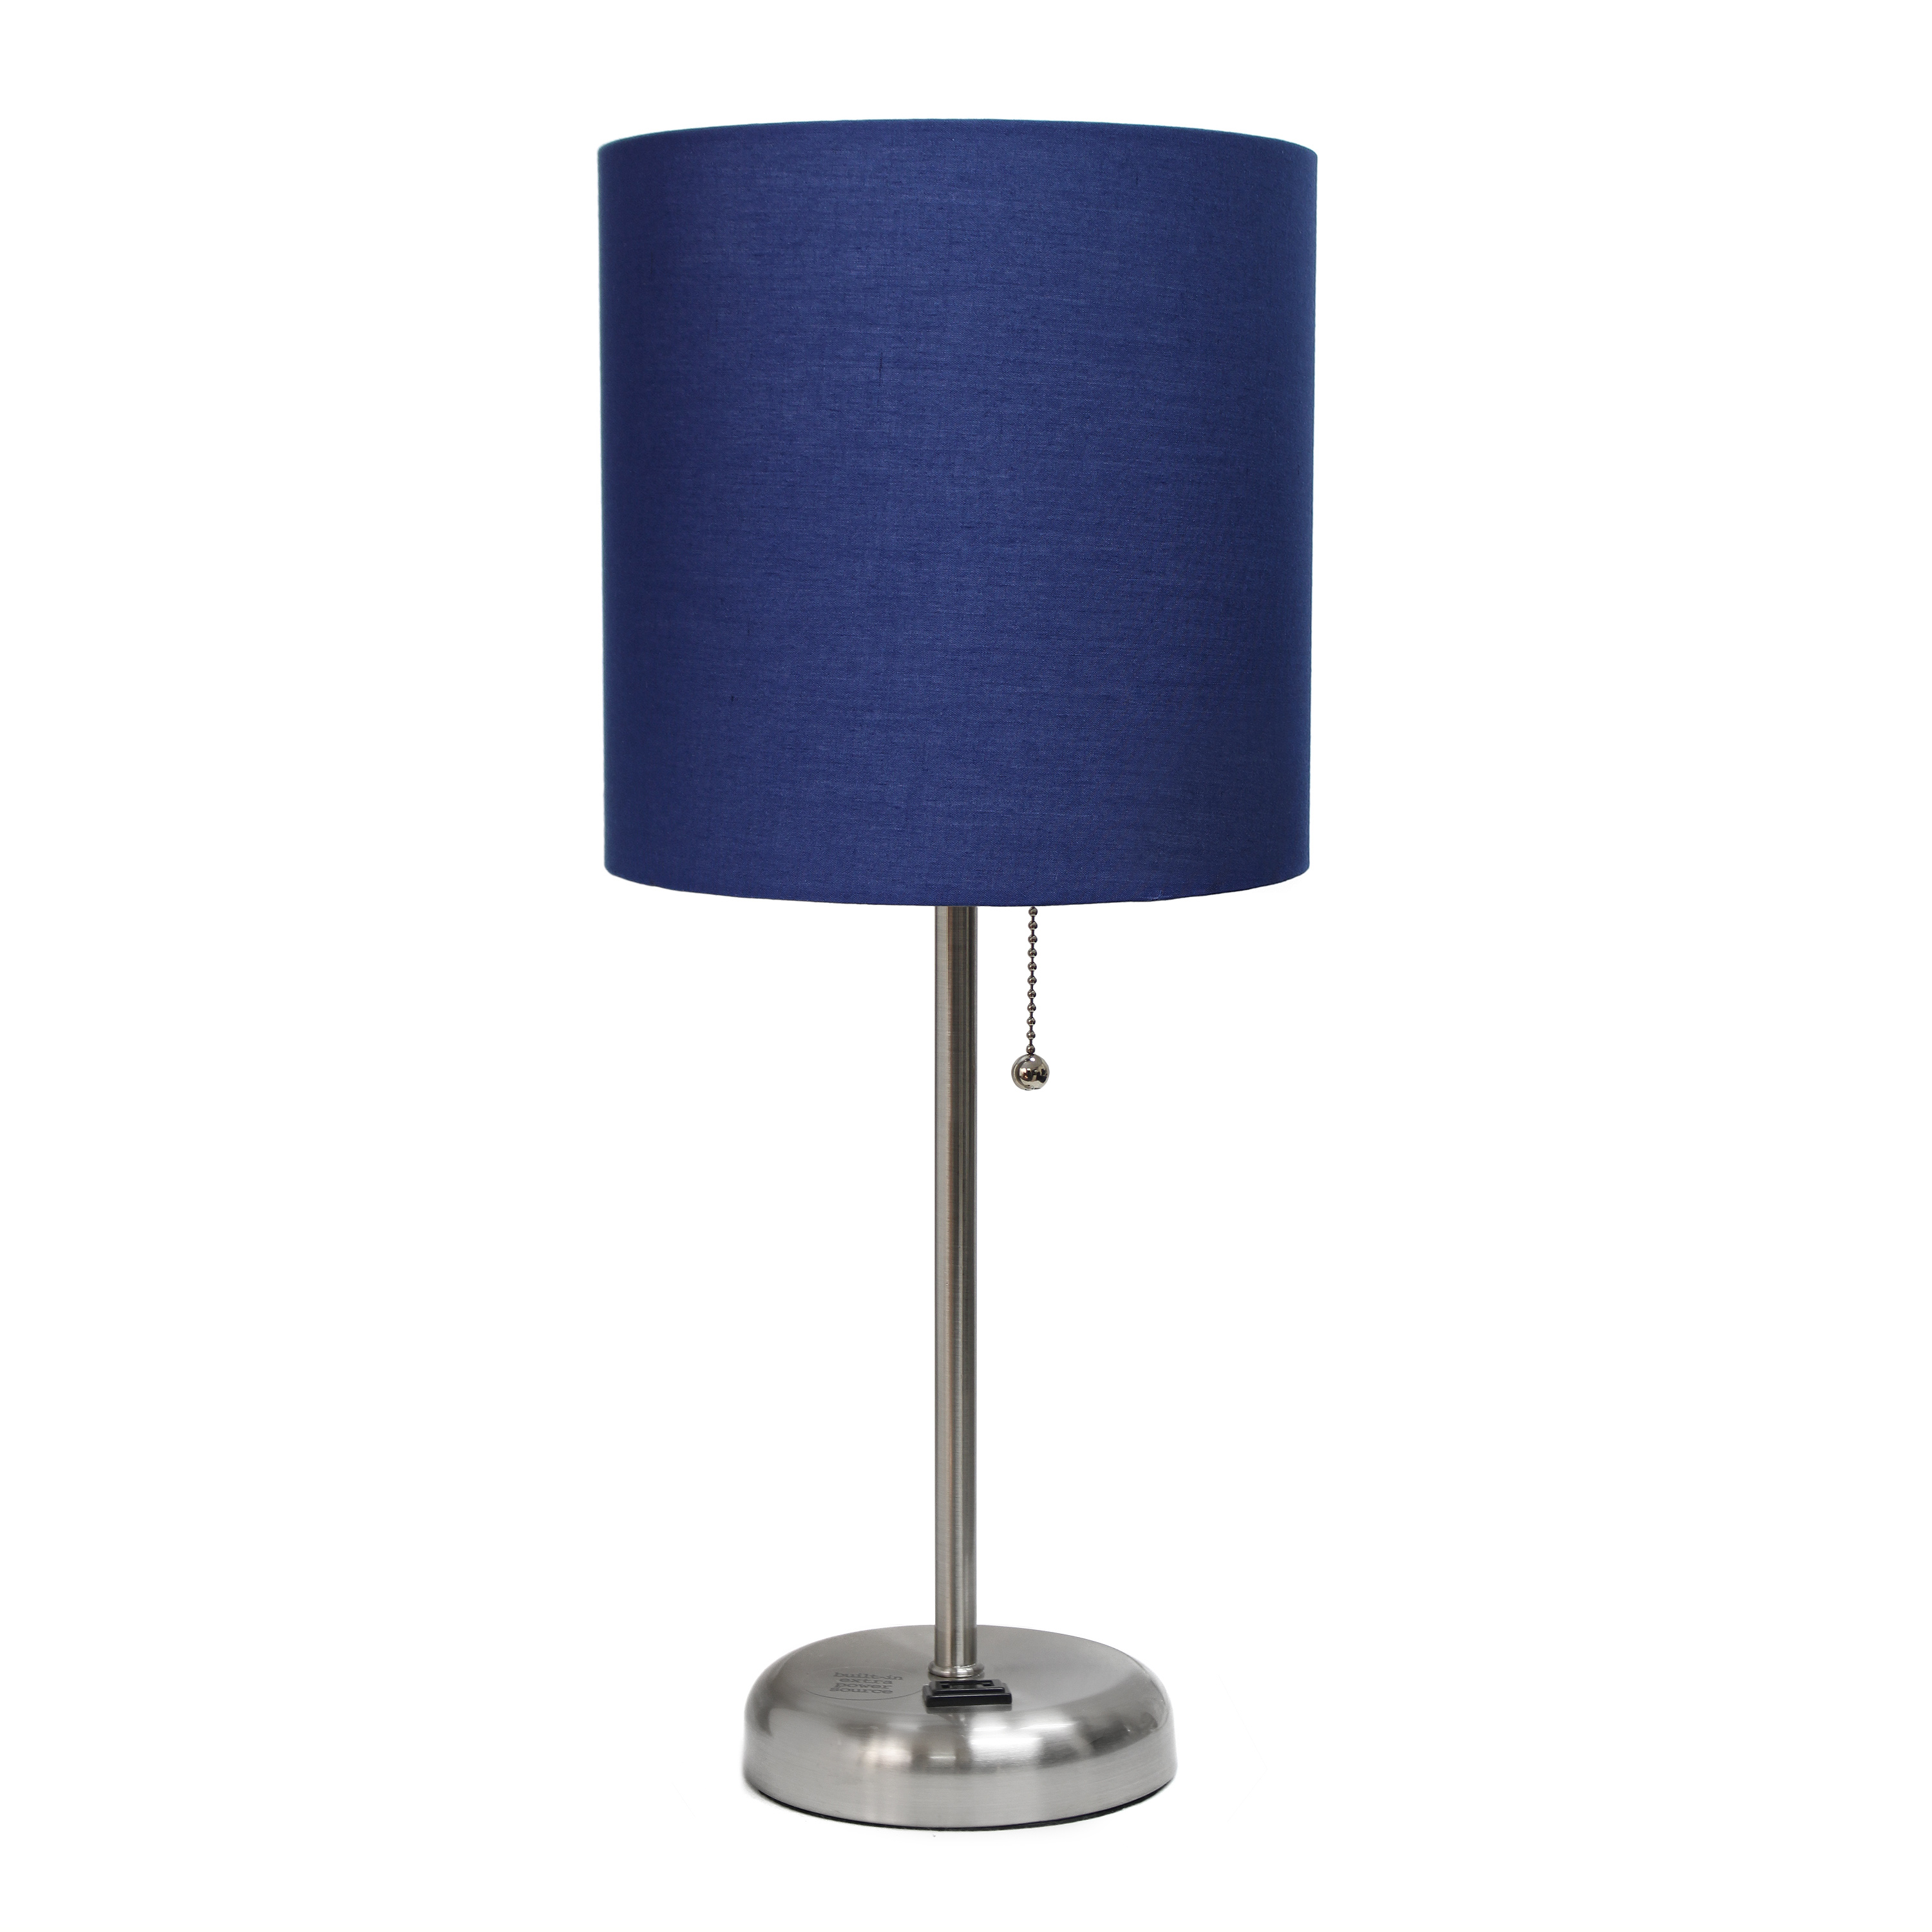 LimeLights Stick Lamp with Charging Outlet and Fabric Shade, Navy